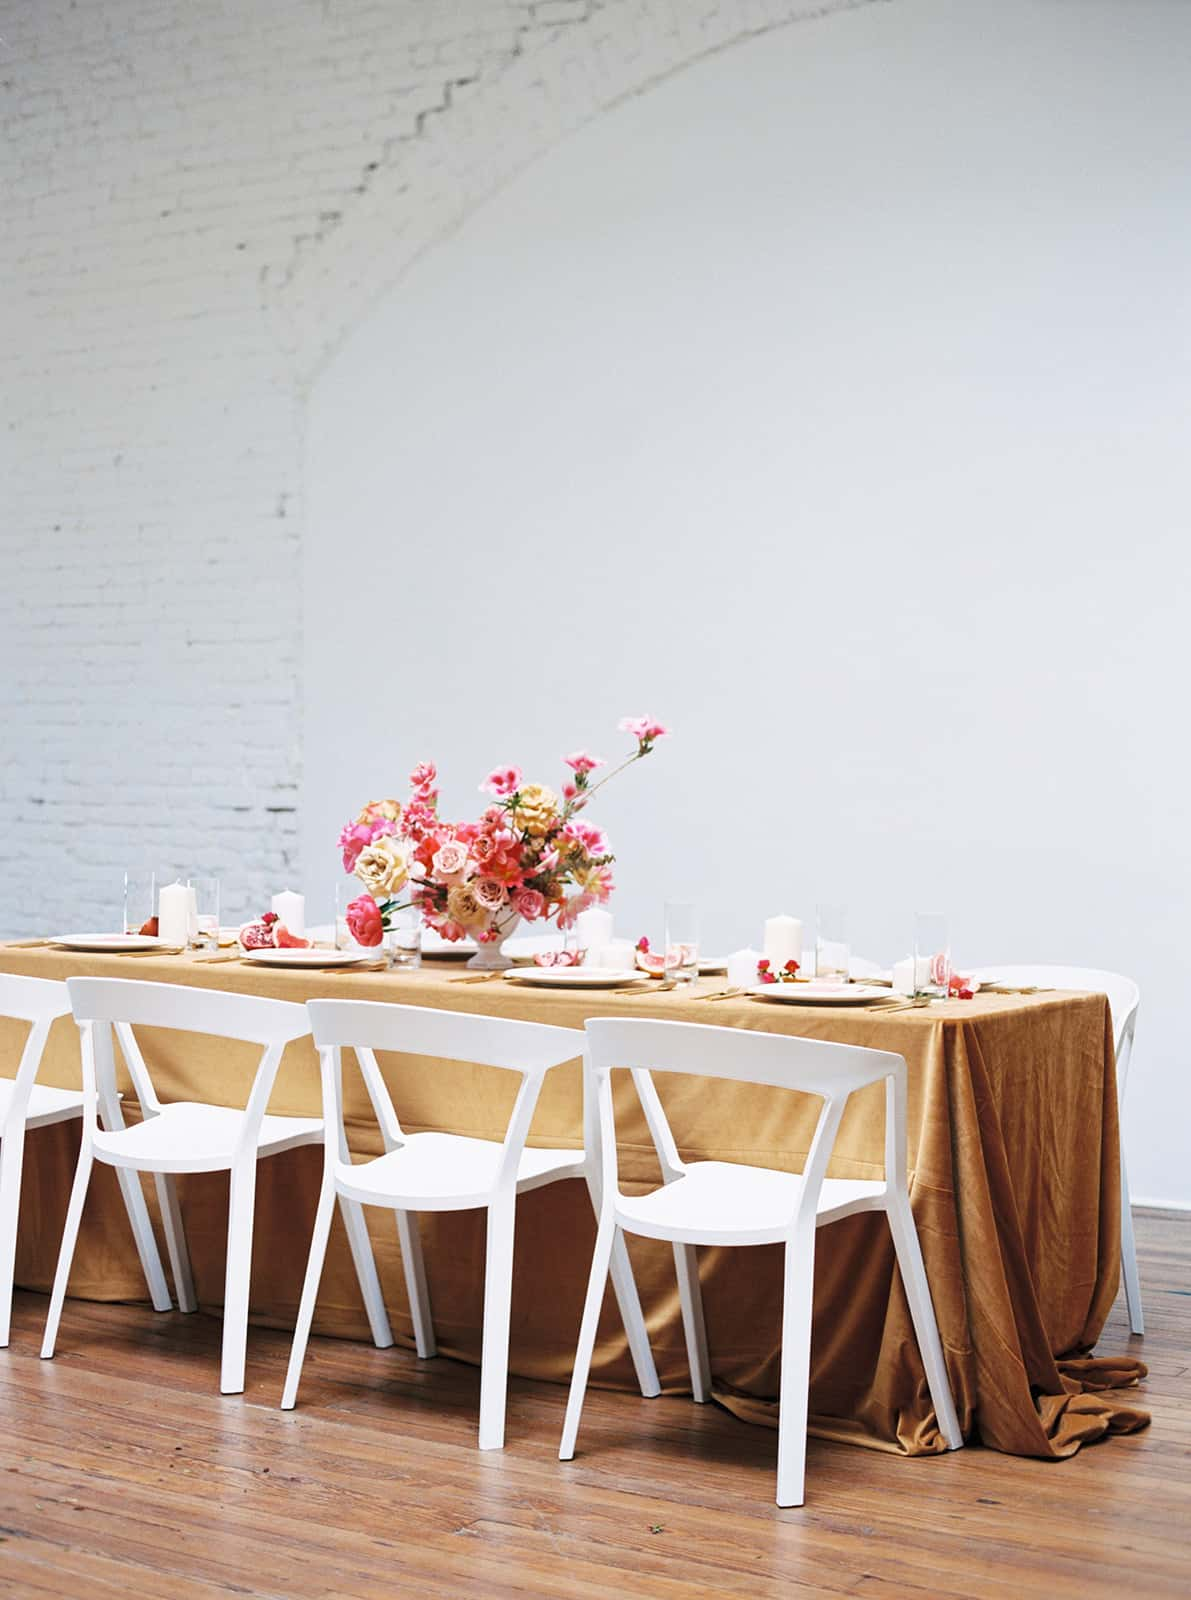 Exquisite tablesetting designed and styled by Color Theory Collective